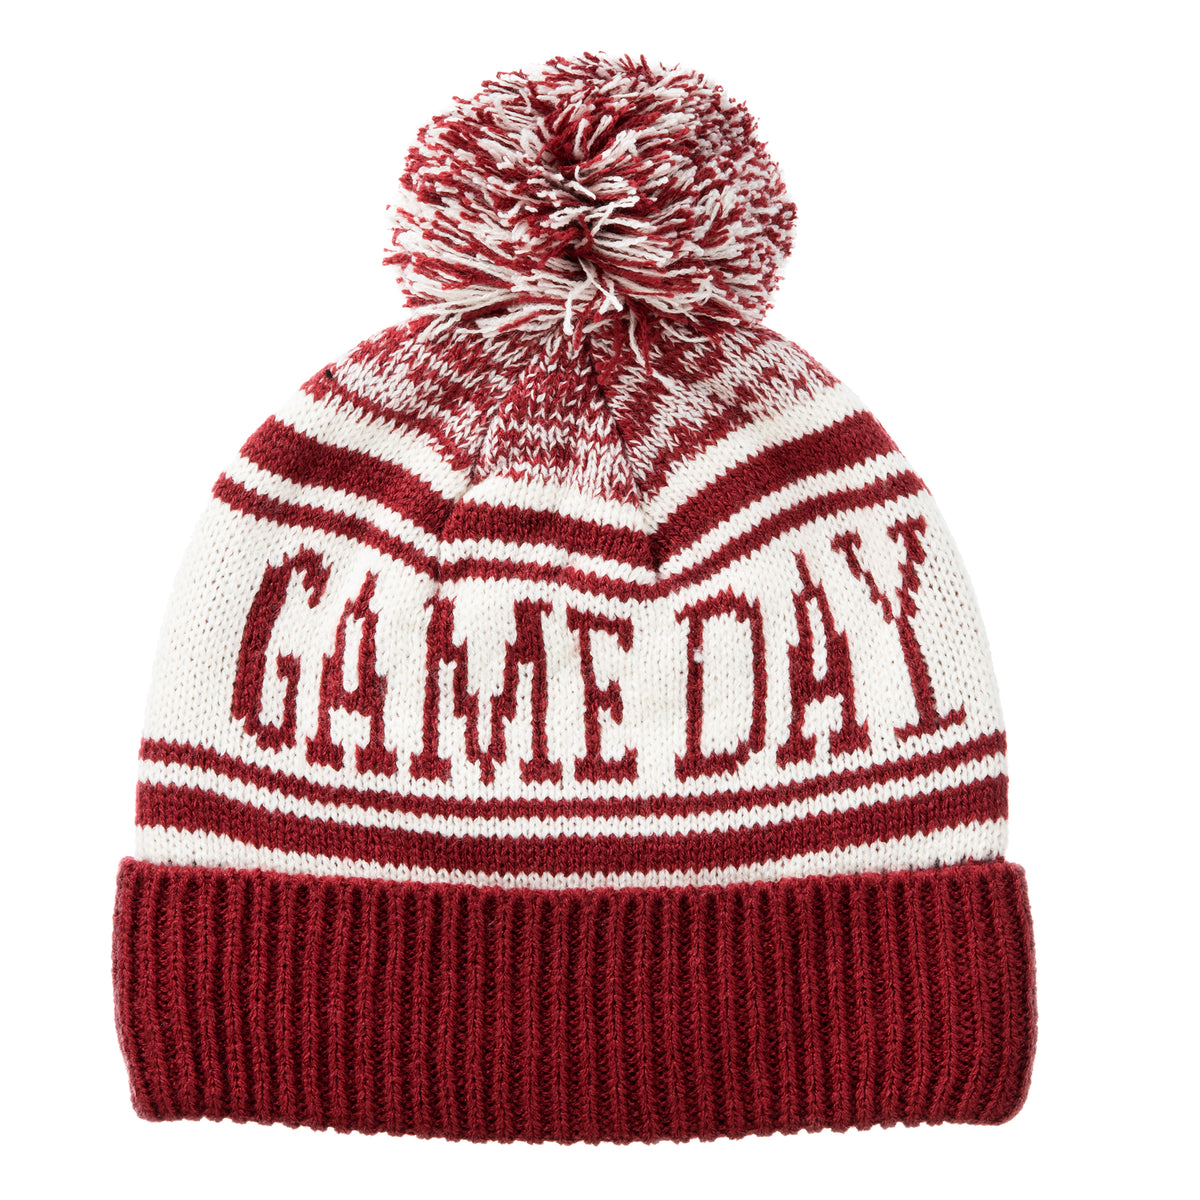 Women's Game Day Hat in Cherry Stone (Red)